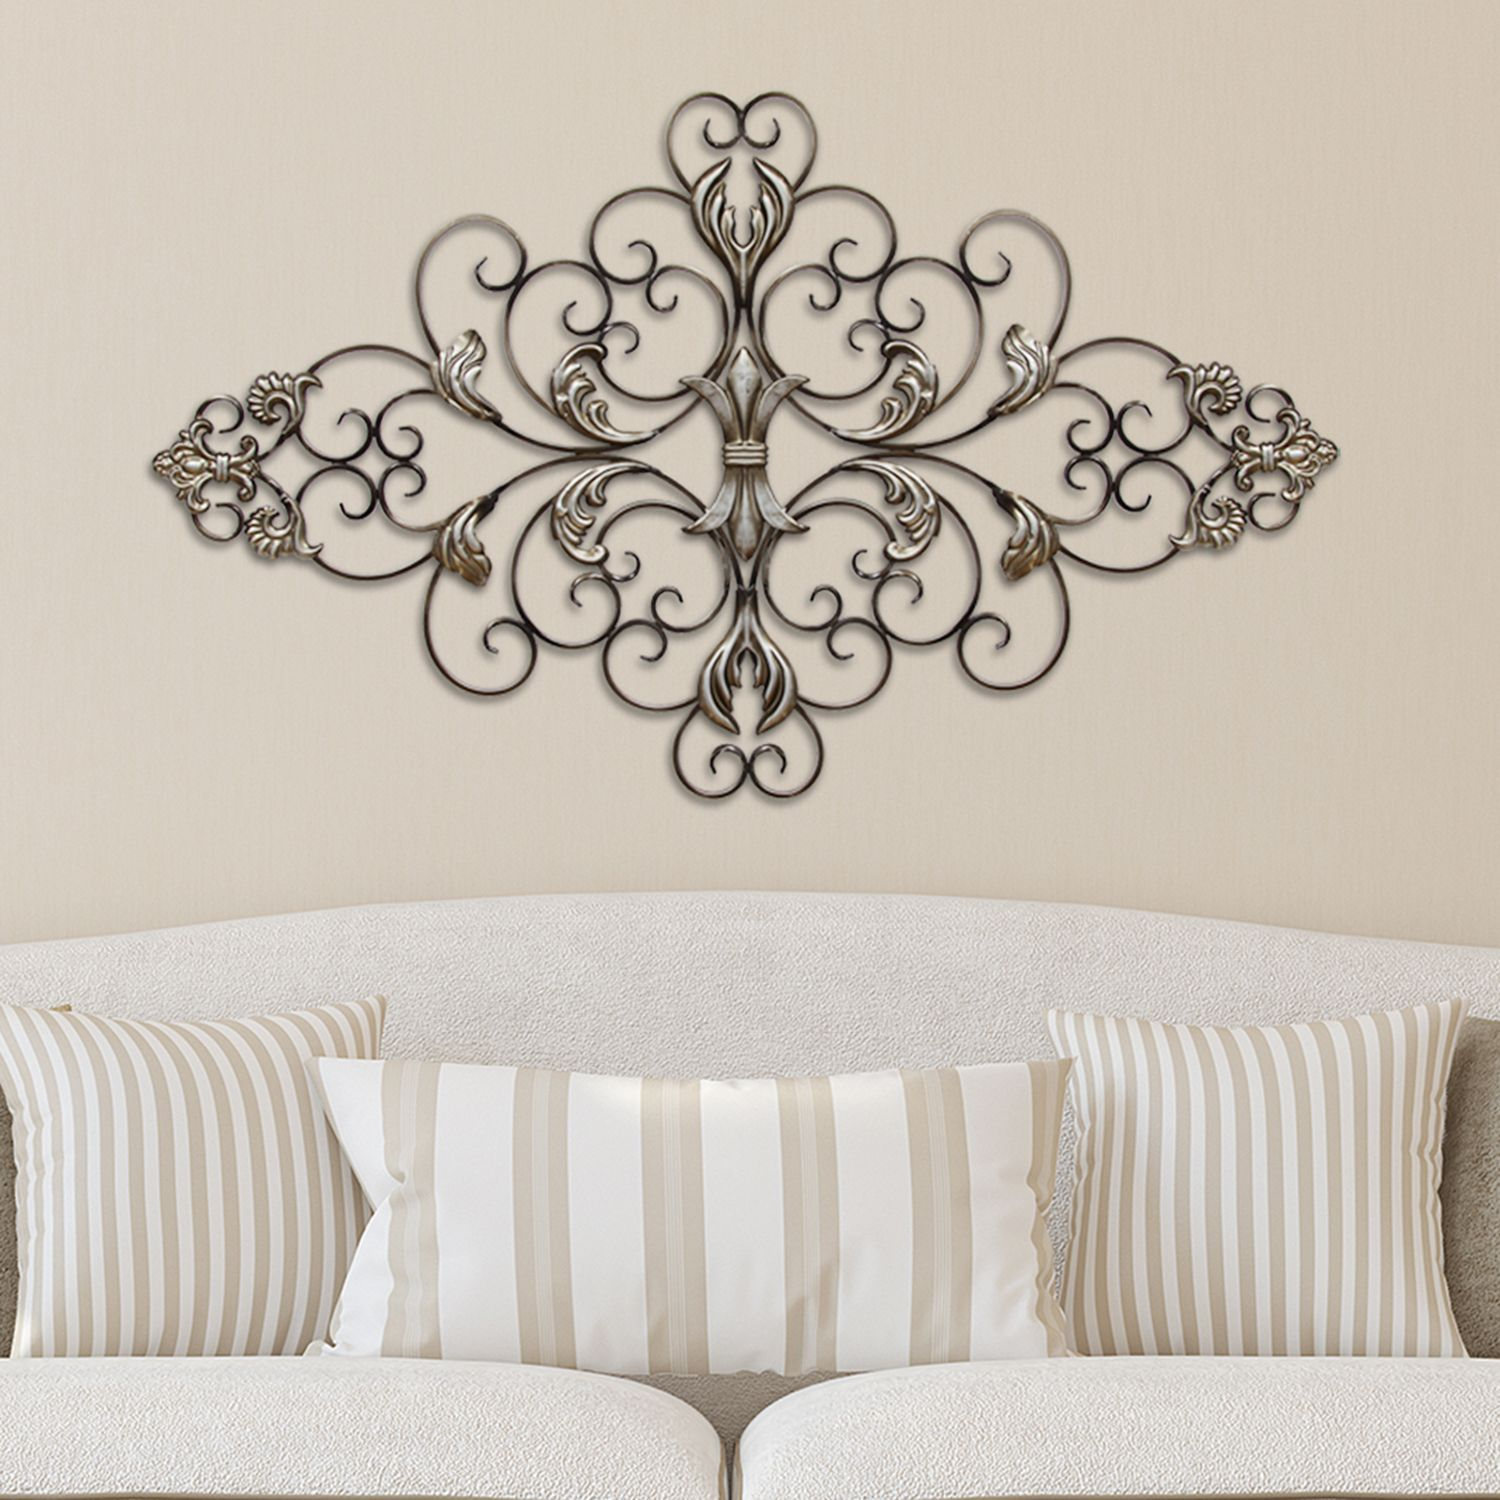 Metal art wall decor pictures